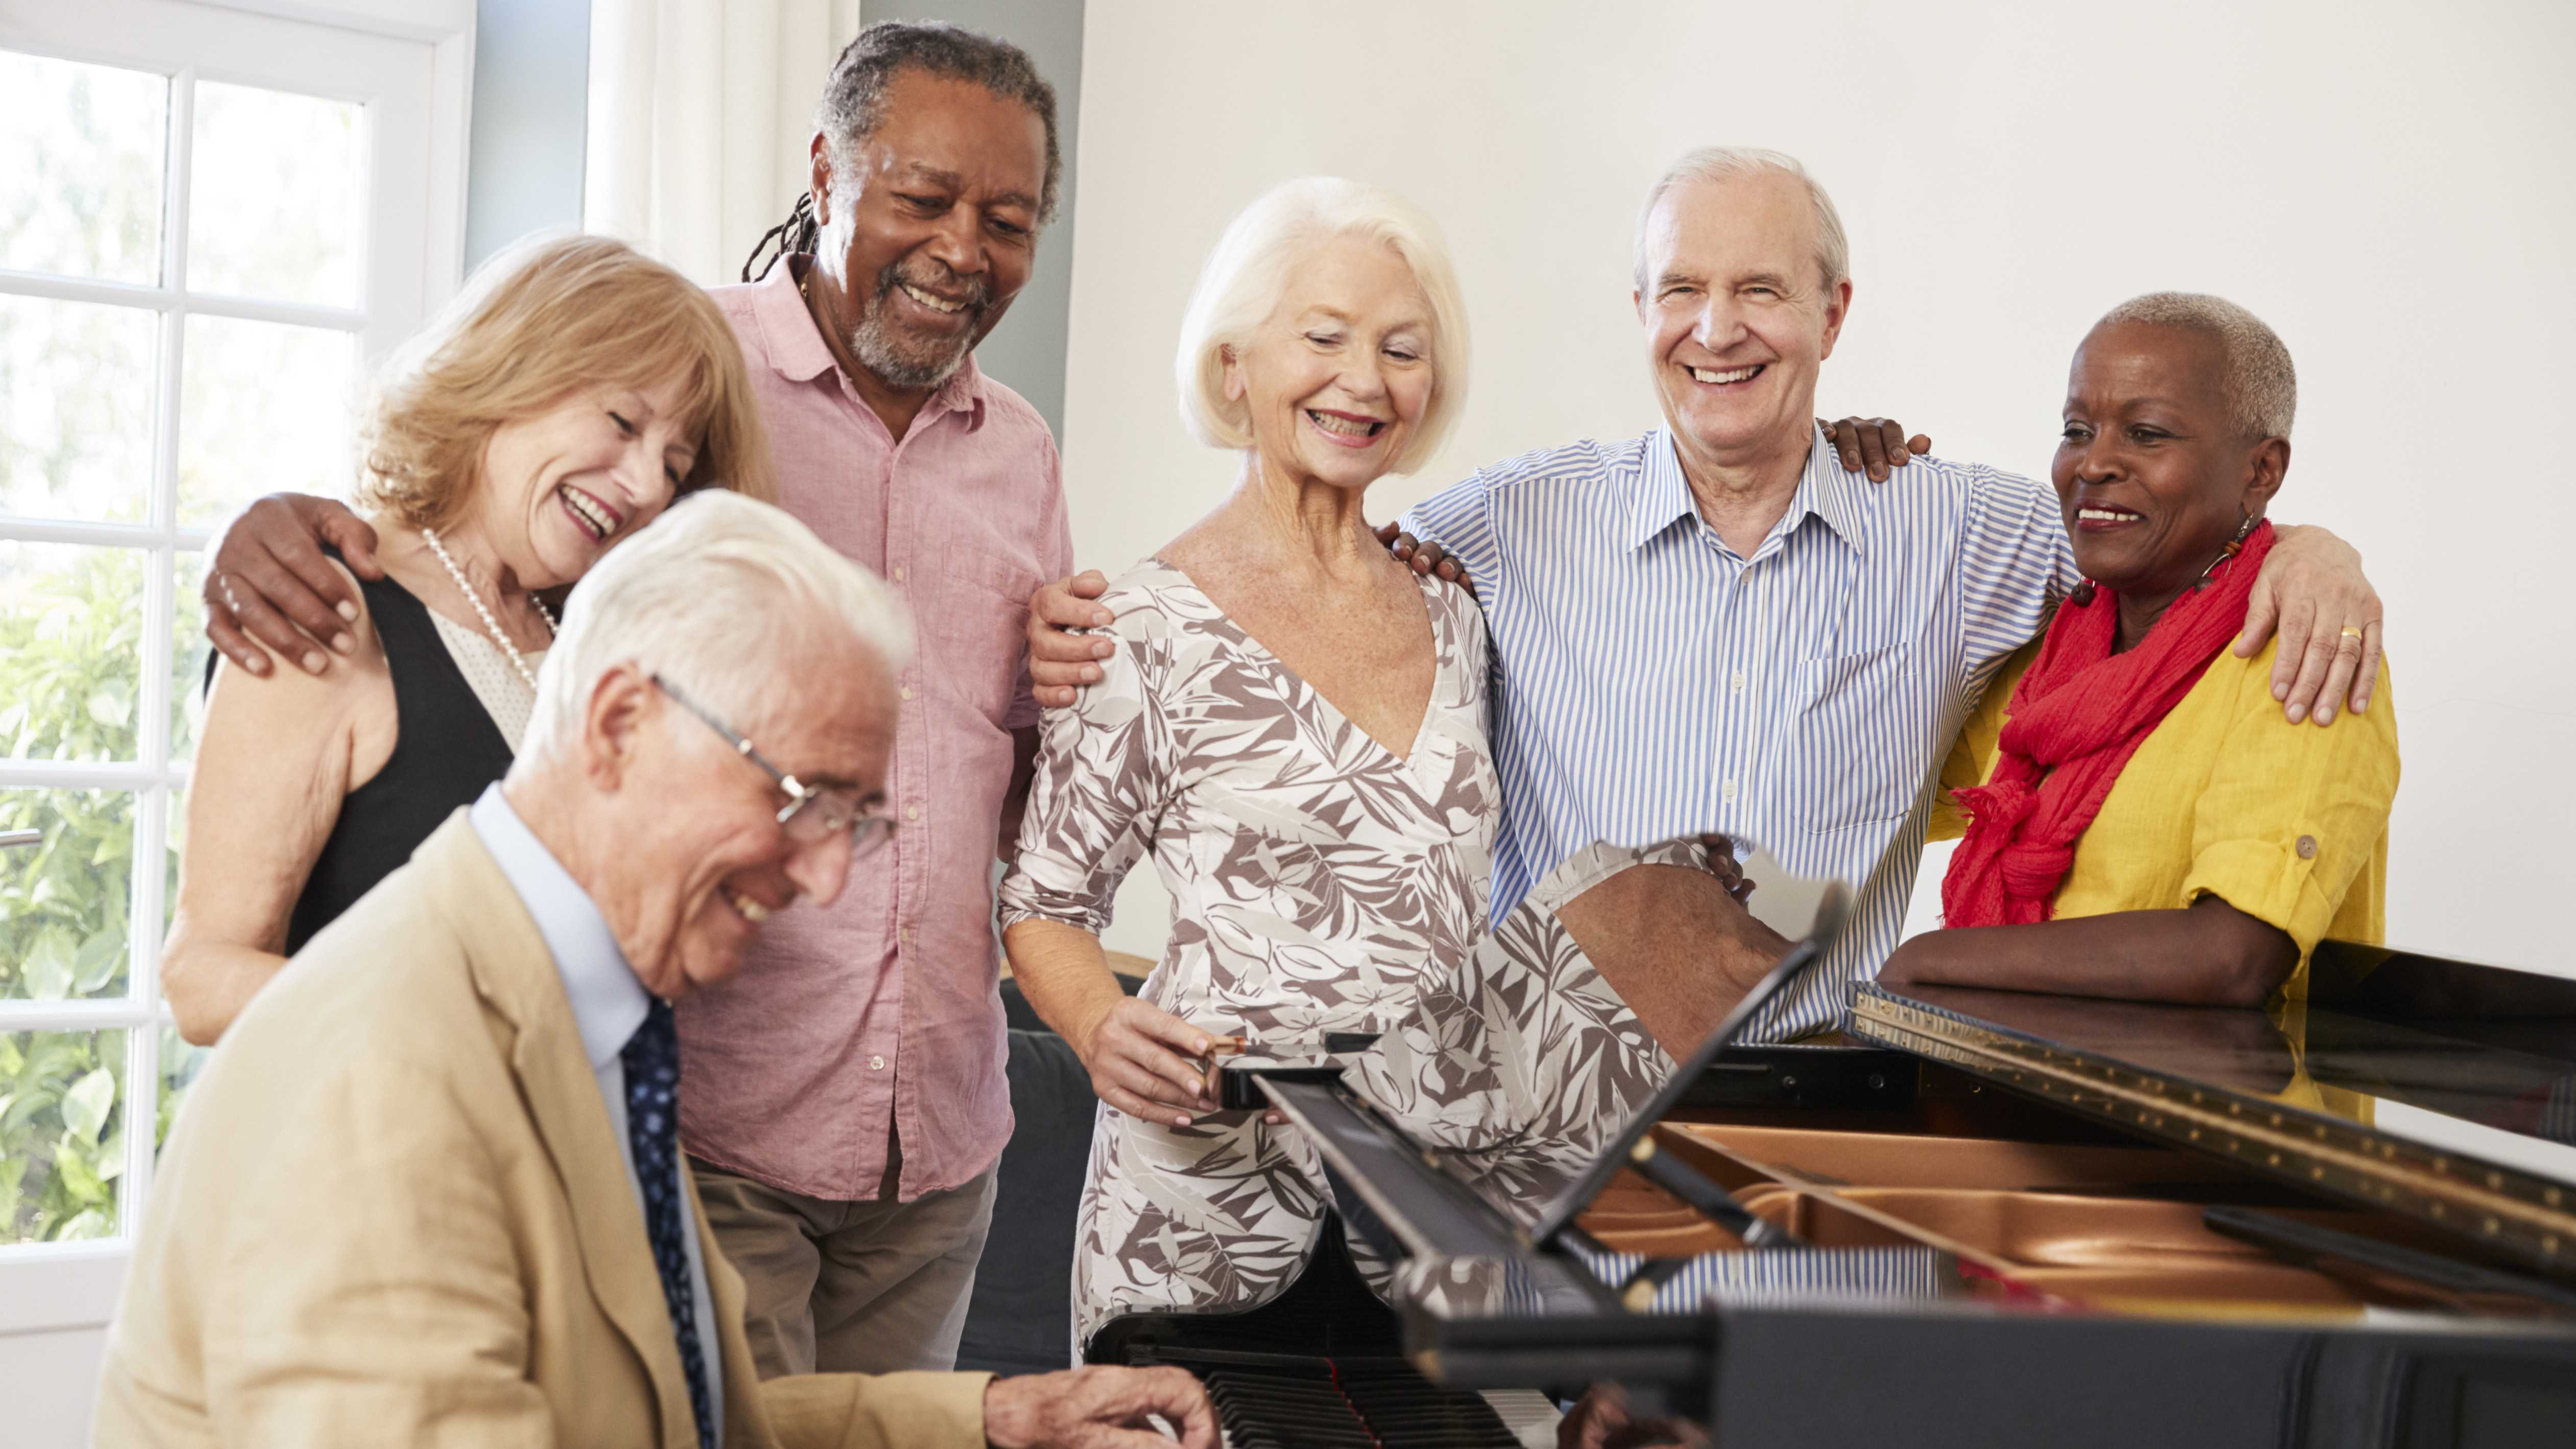 Choir Brings Caregivers and Dementia Patients Together